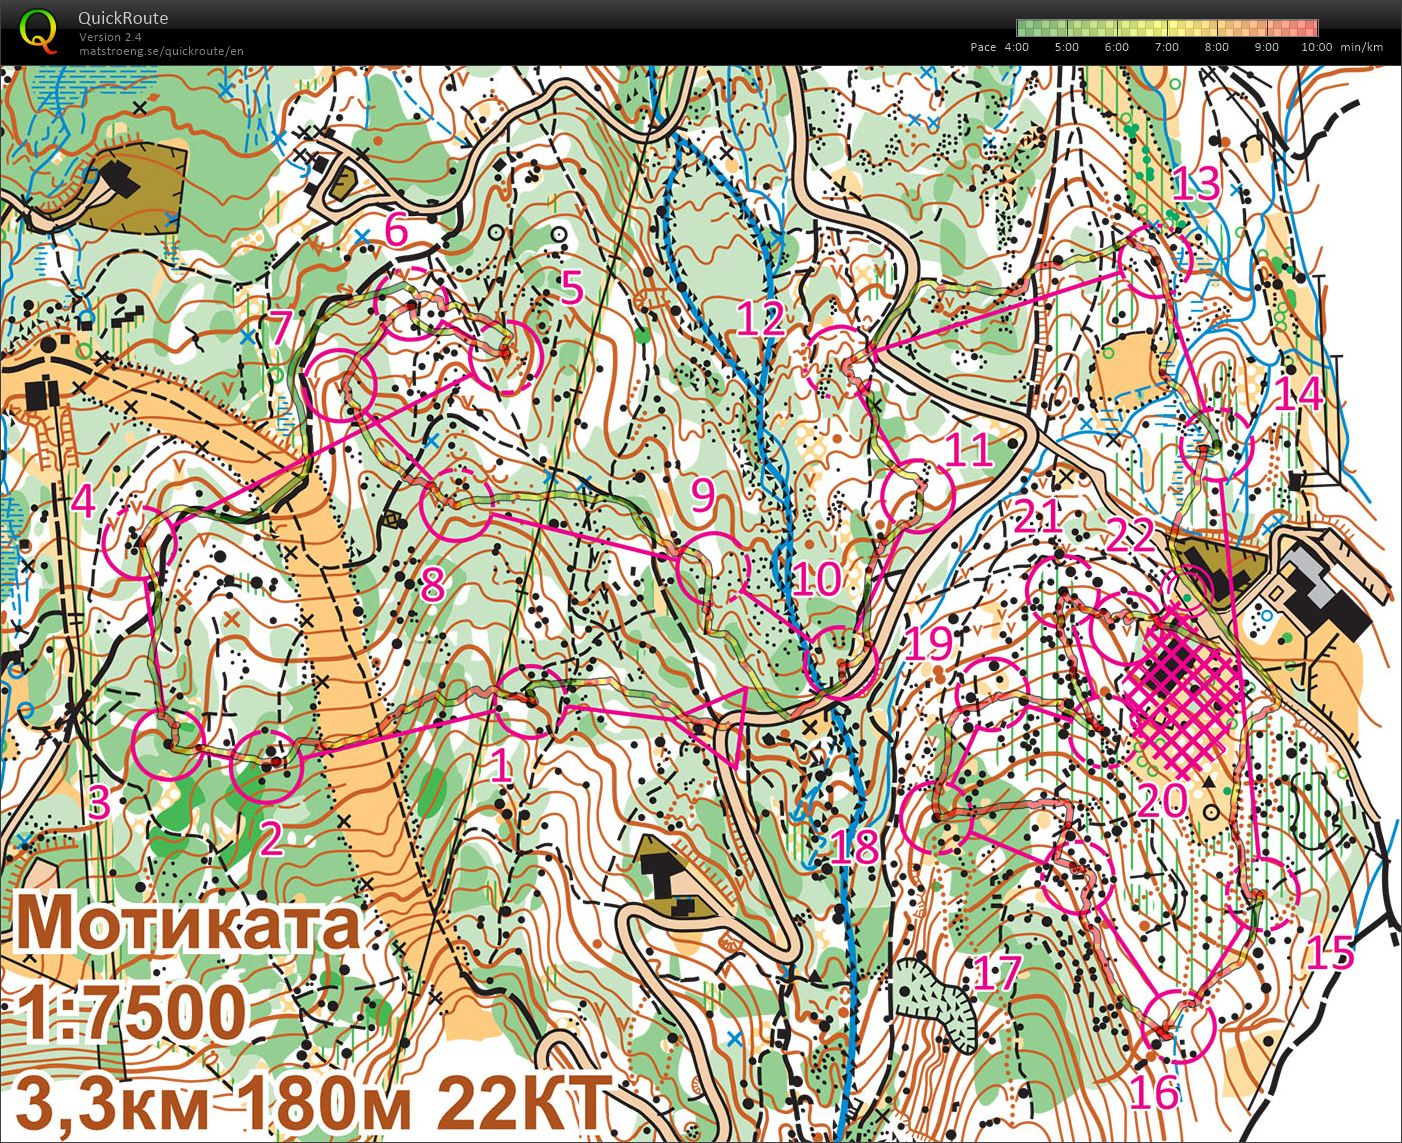 First orienteering session for 2021 (01/01/2021)